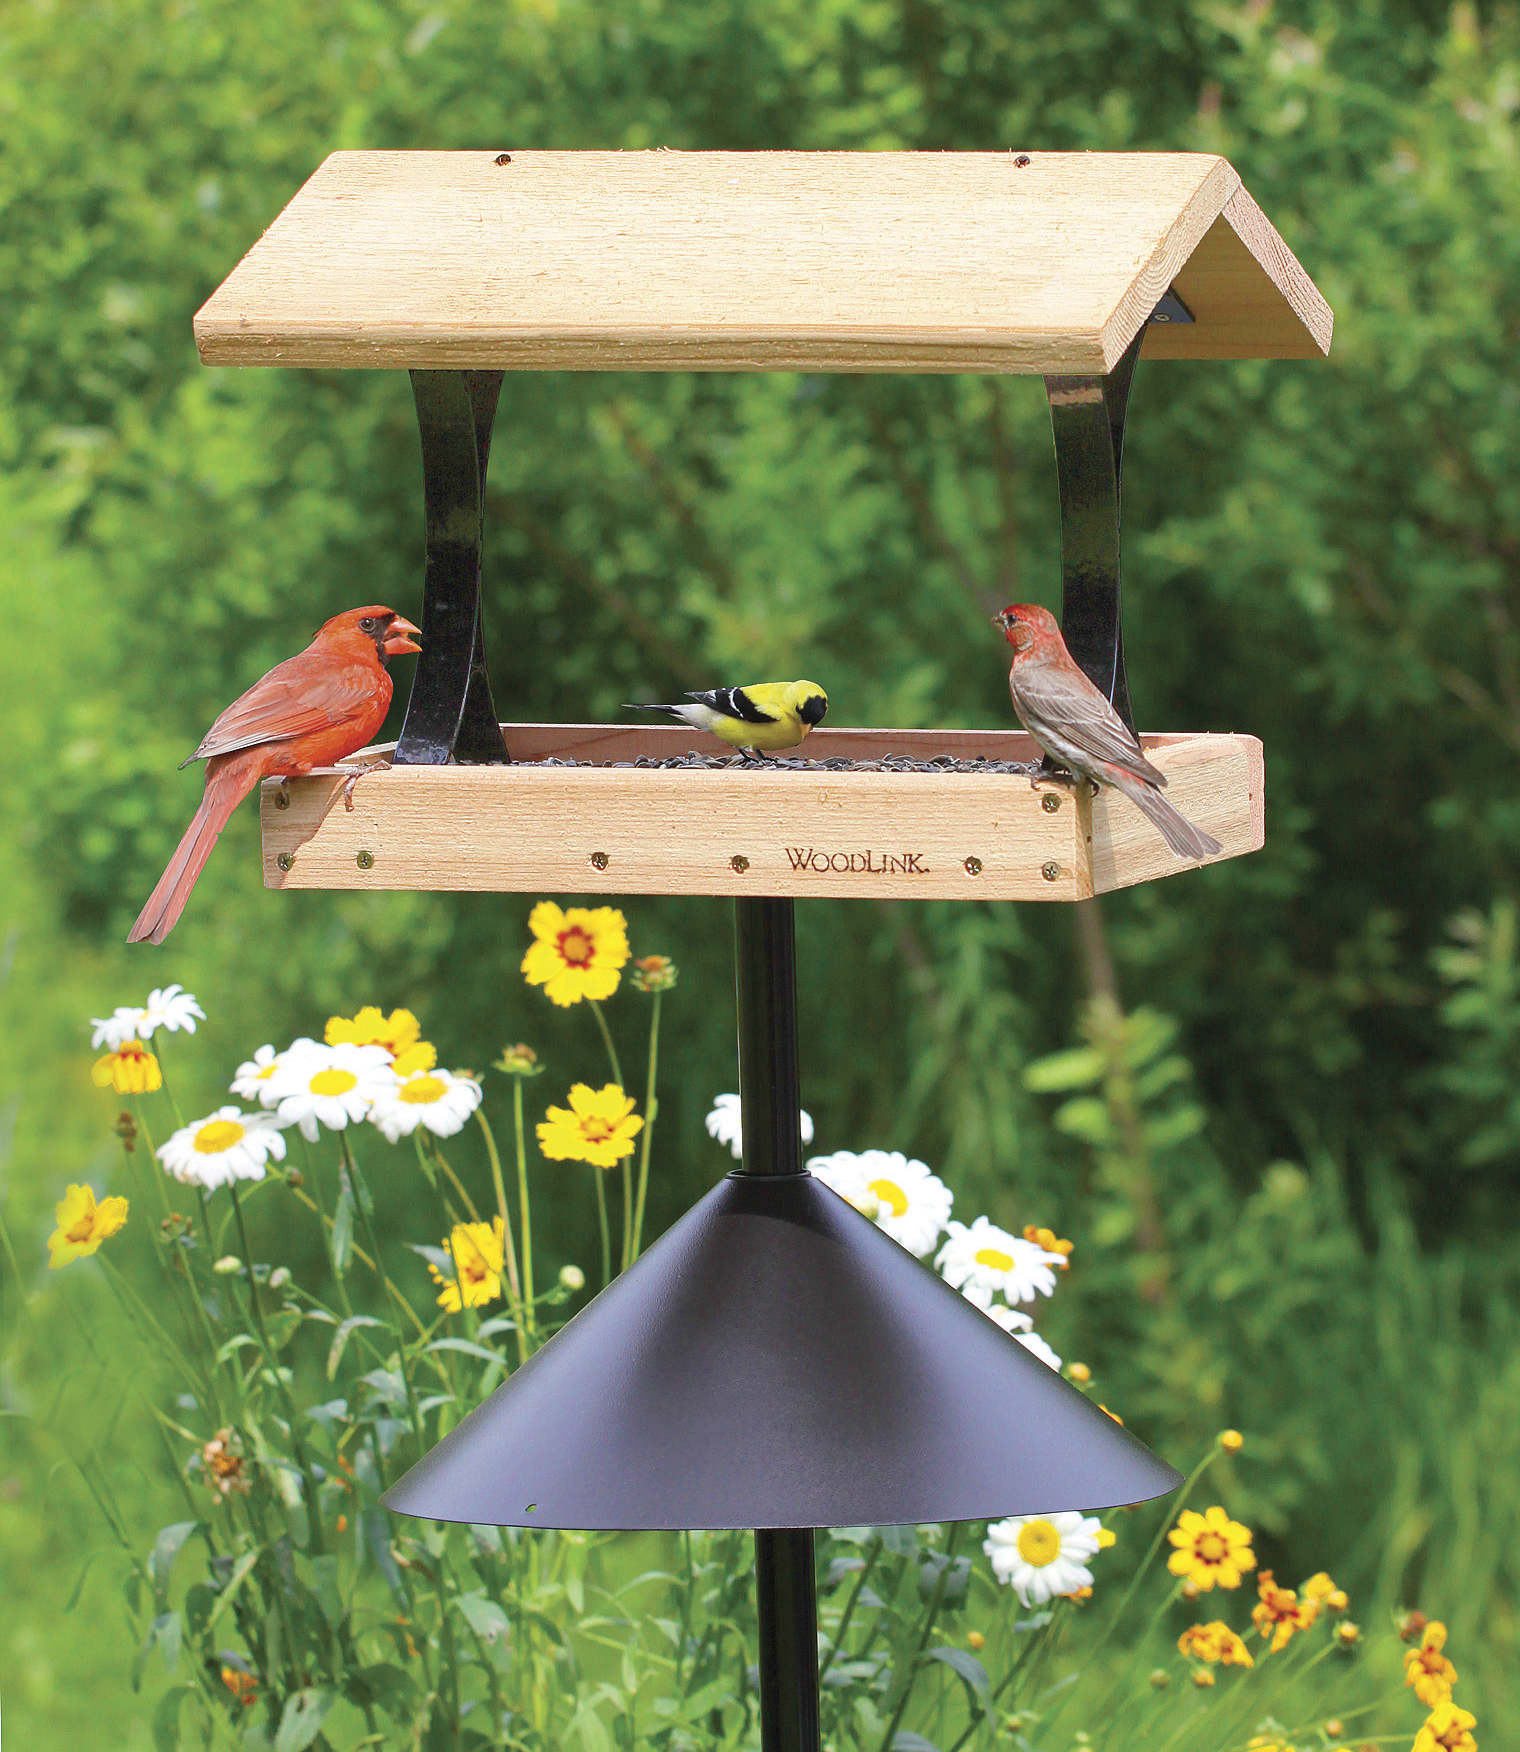 dp garden birdscapes wild be proof pet ca squirrel lawn how perky feeder bird to amazon gone patio ii